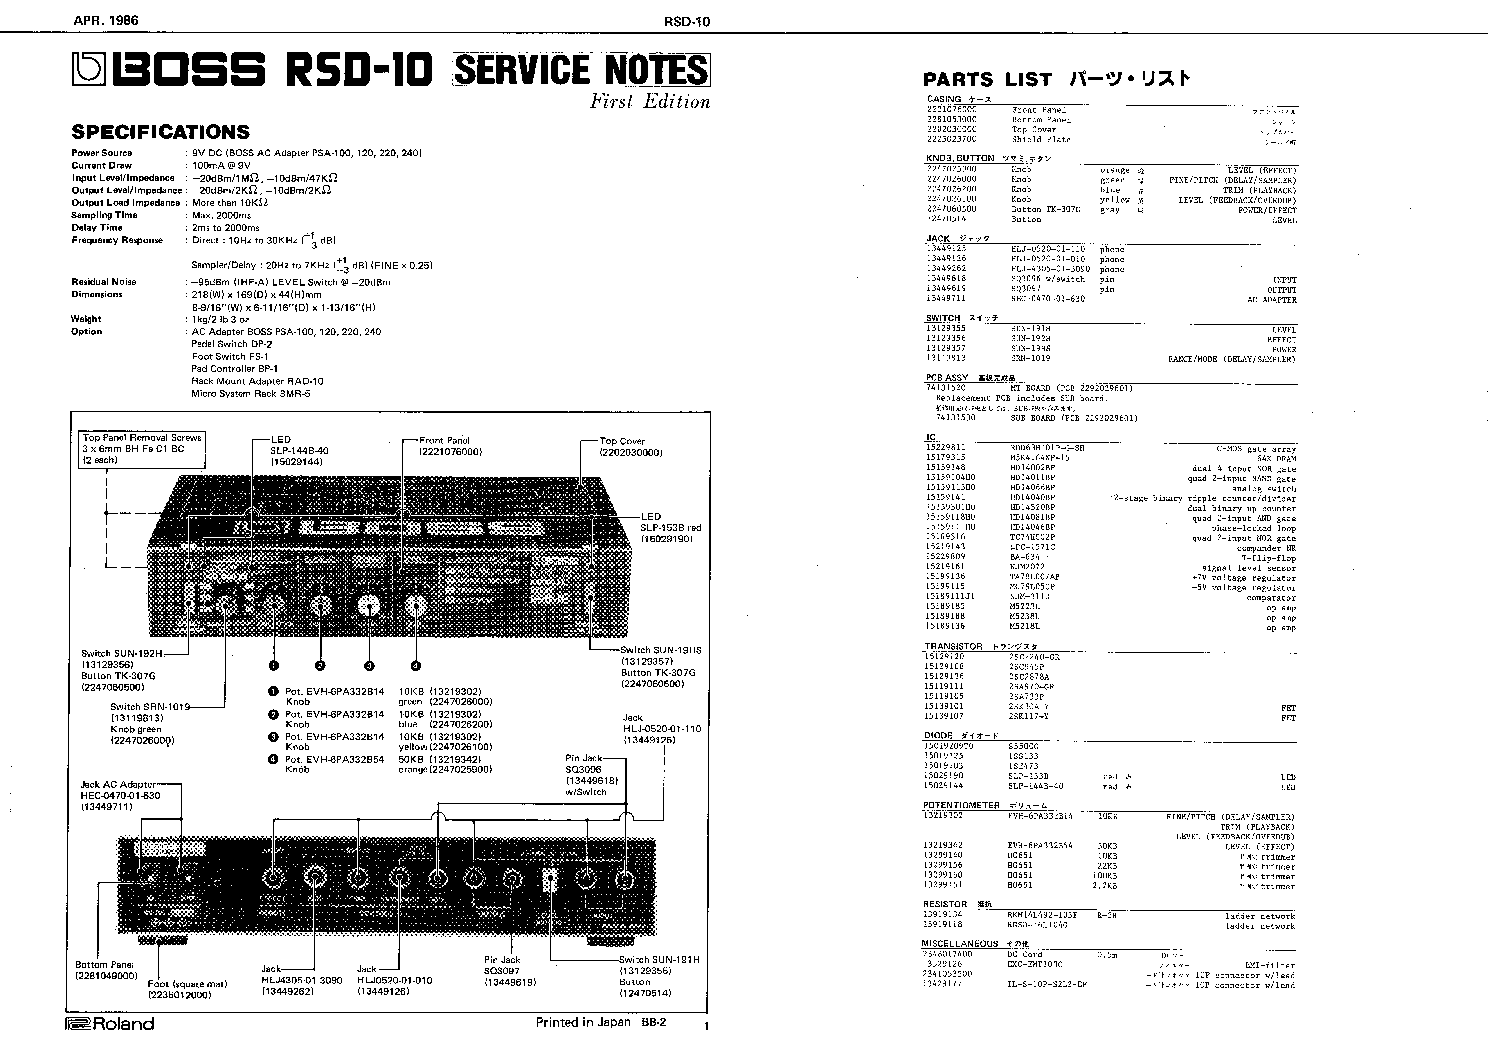 BOSS RSD-10 Service Manual free download, schematics